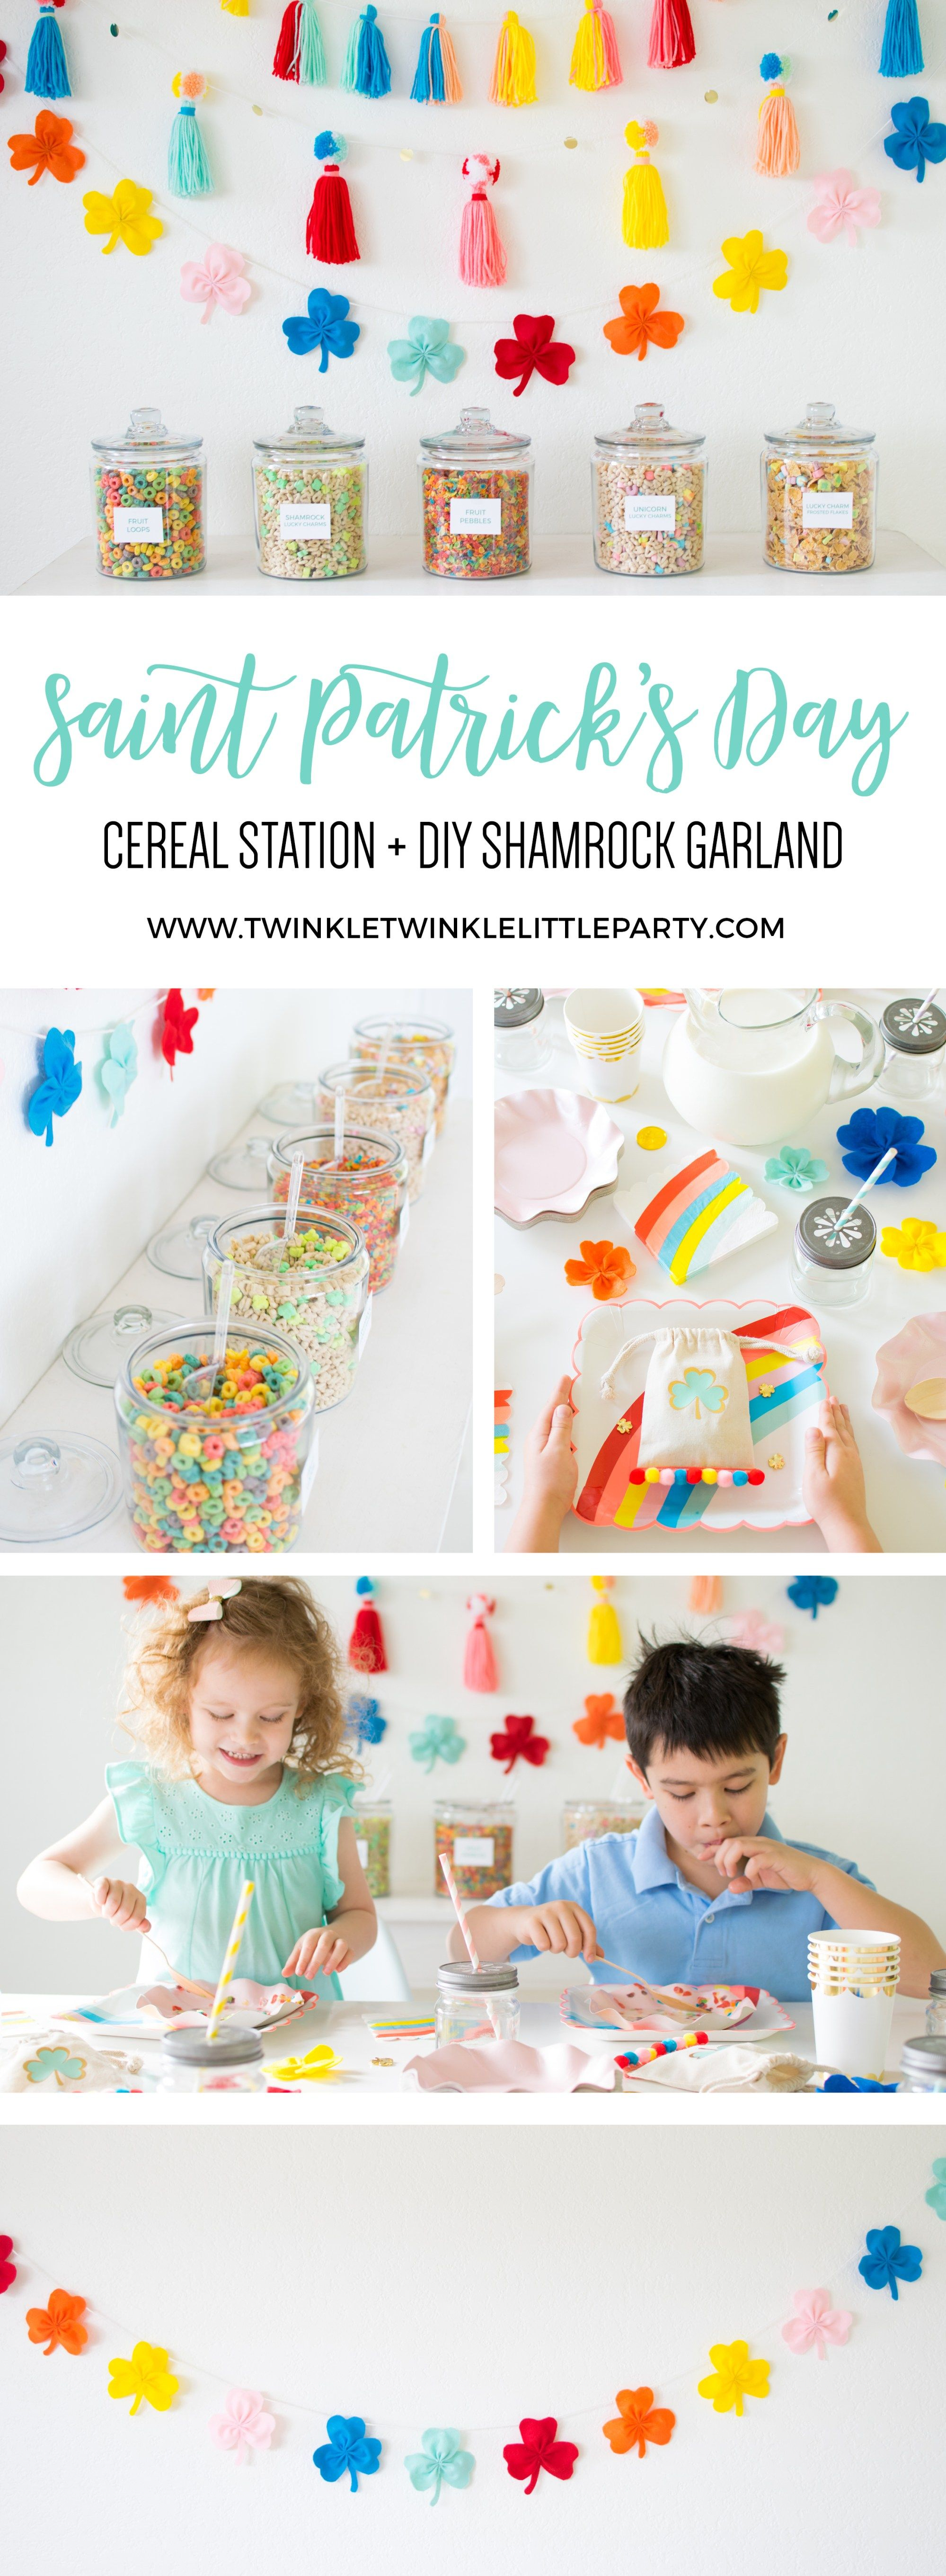 Surprise the kids with a Rainbow Inspired Saint's Patrick's Day